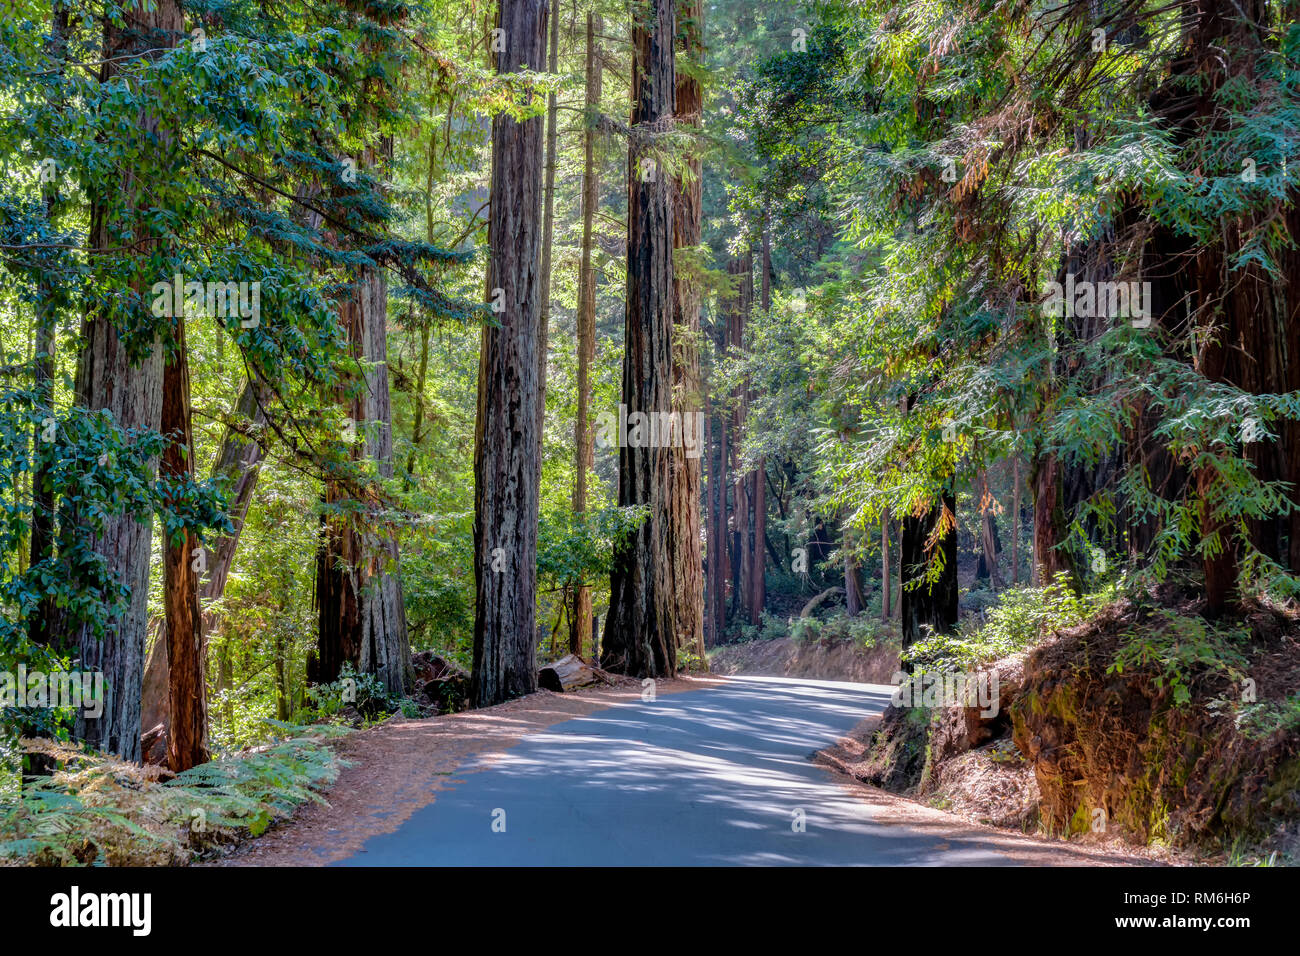 Towering redwood sequoia trees at, Big Basin Redwoods State Park. Stock Photo